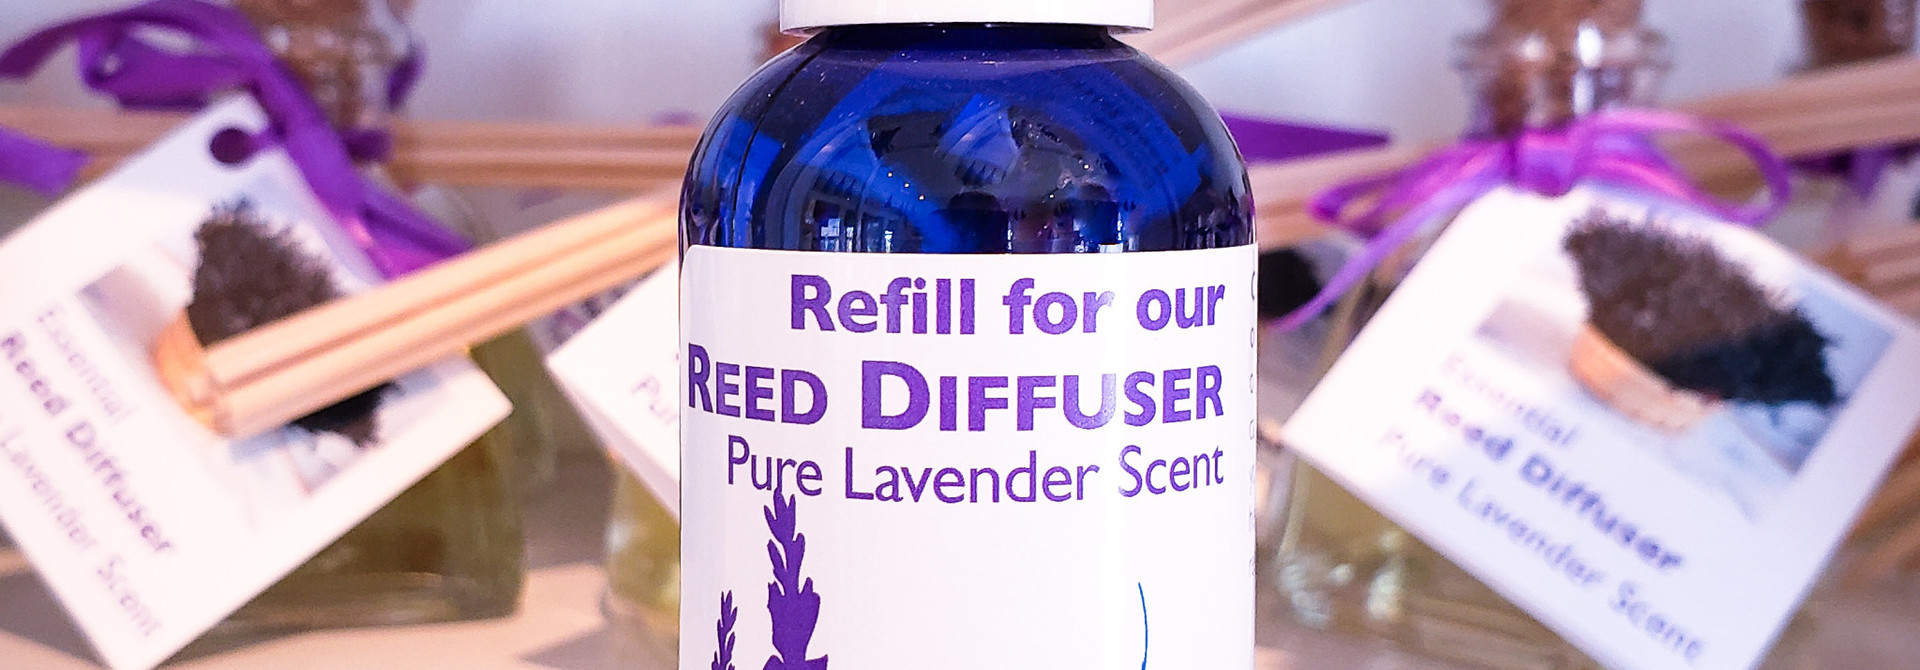 Essential Reed Diffuser - 2 oz REFILL Pure Lavender